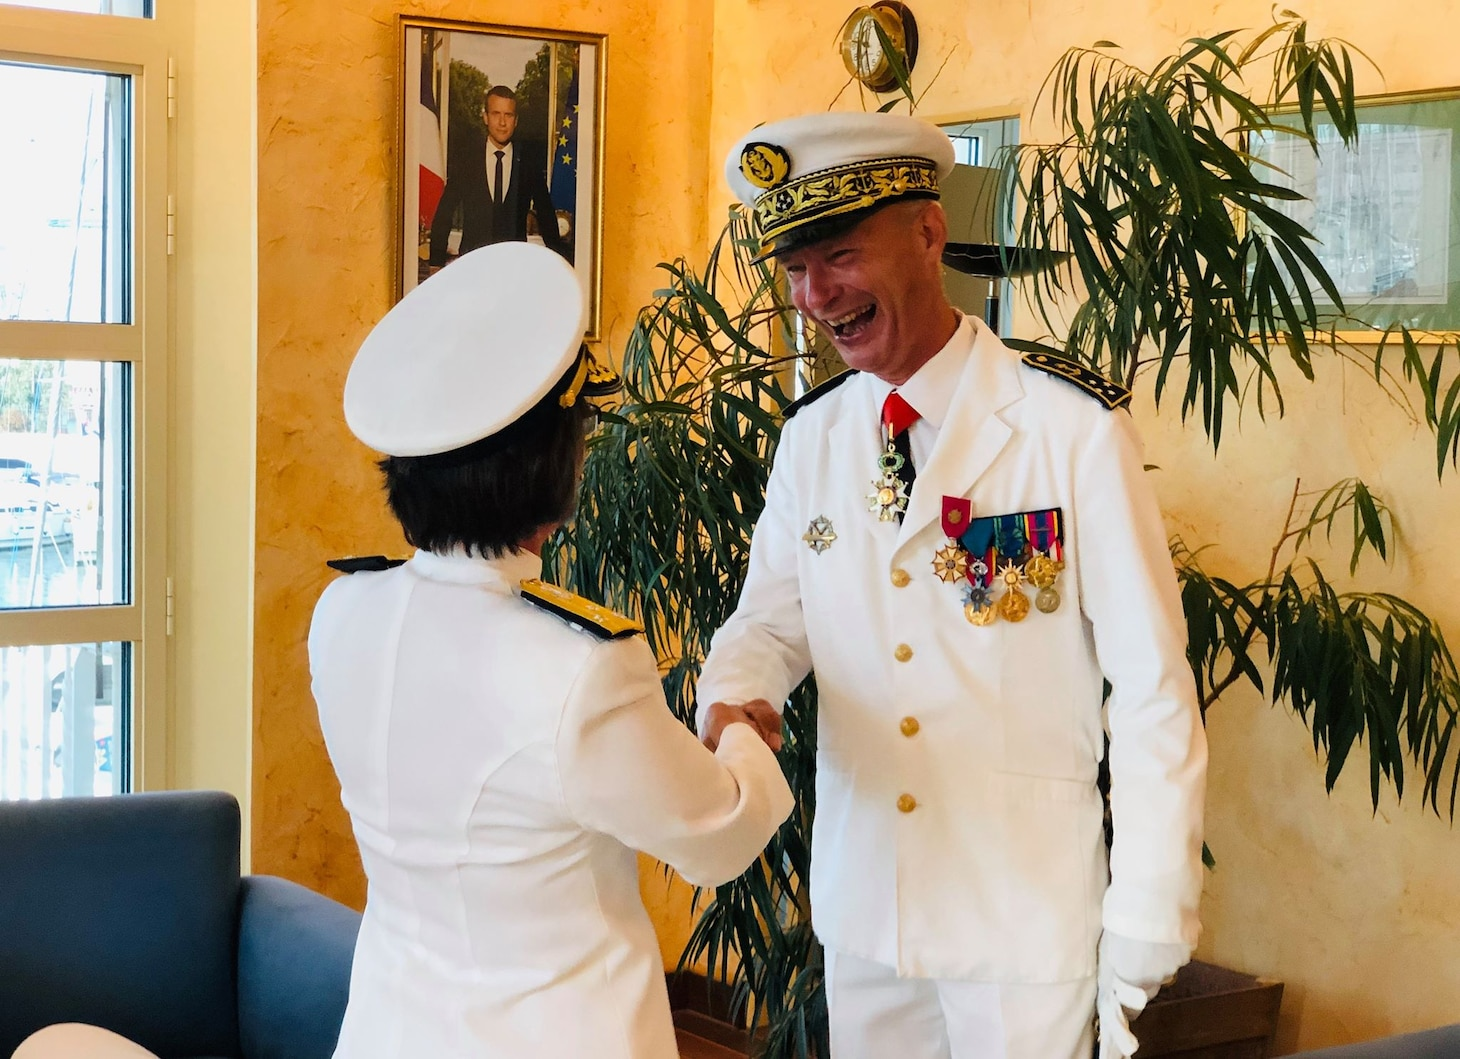 C6F Presents Legion of Merit to French Vice Adm. du Ché